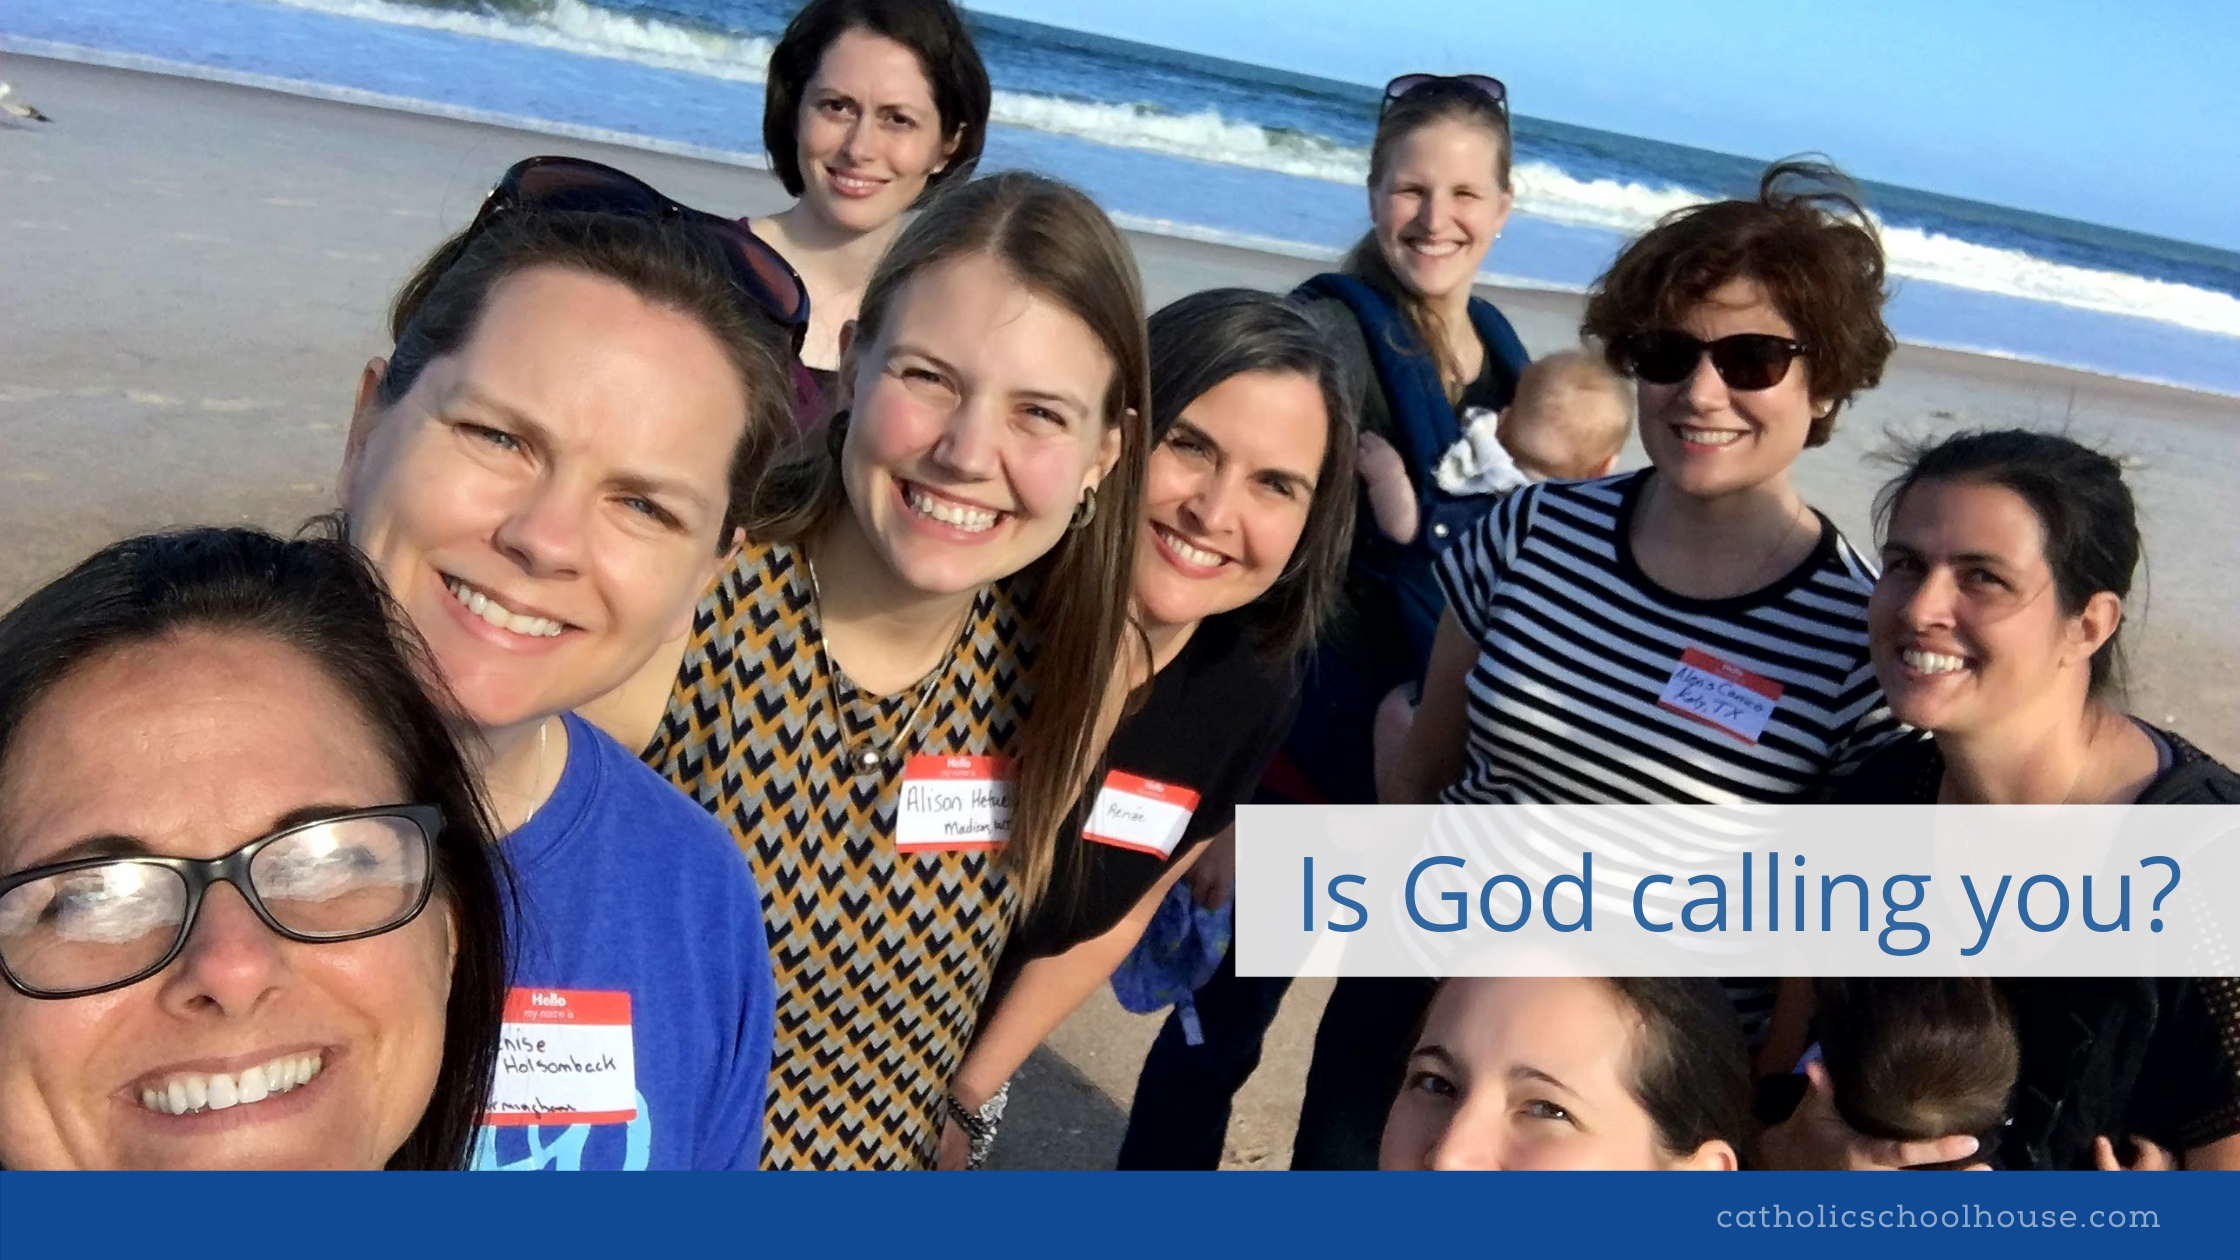 Catholic Schoolhouse–Is God Calling you?